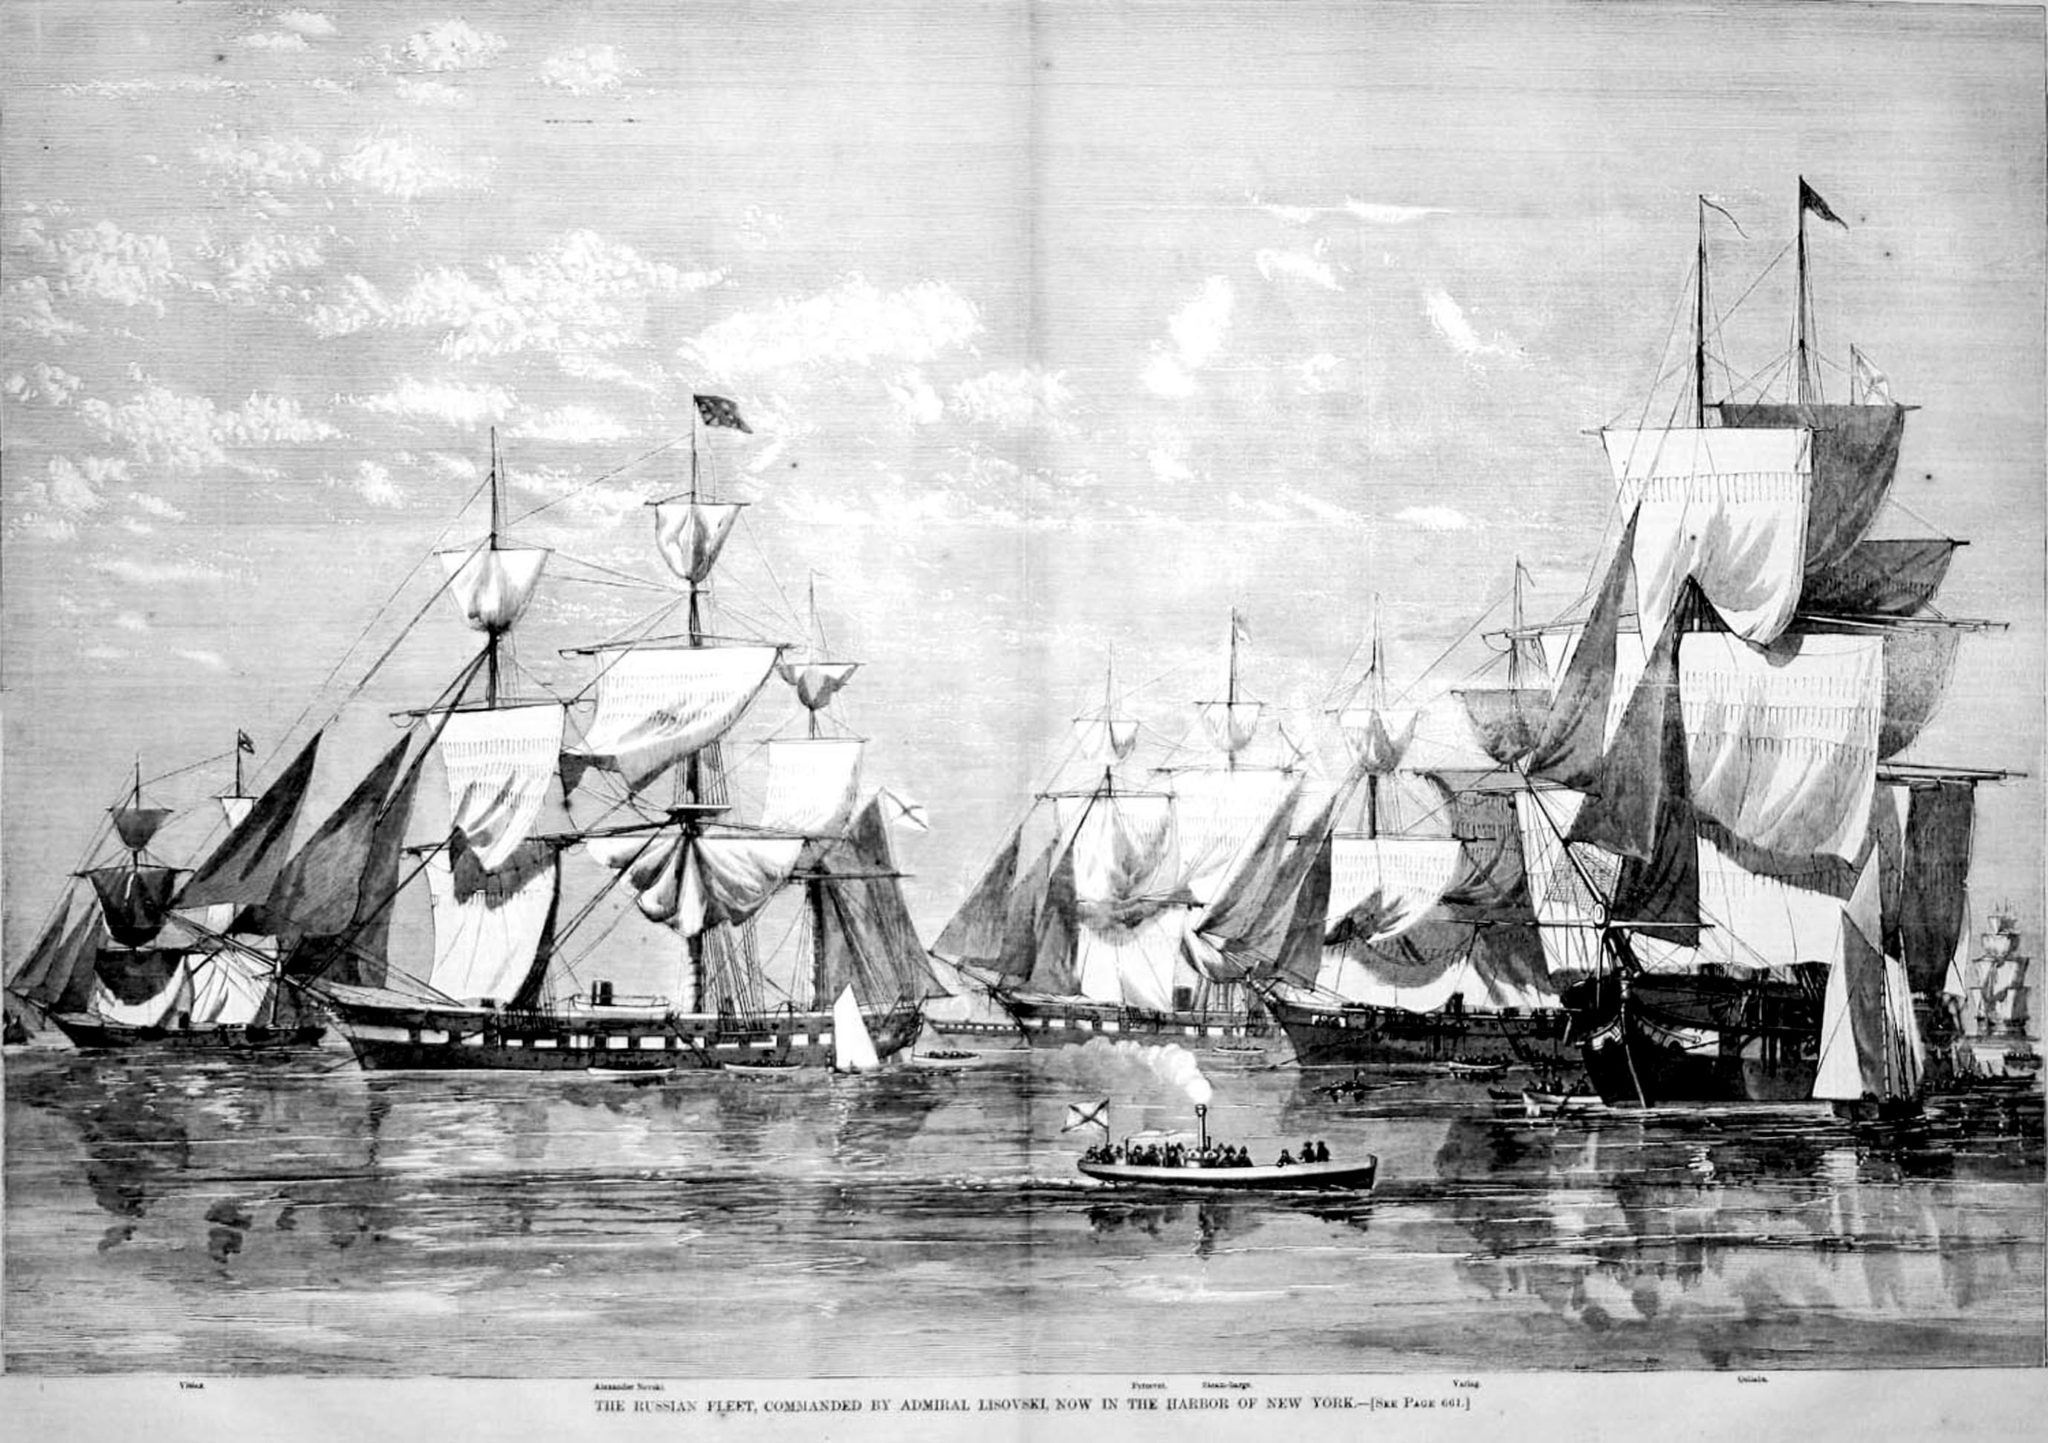 The Russian Fleet, Commanded by Admiral Lisovski, Now in New York Harbor. Harpers Weekly, 1863